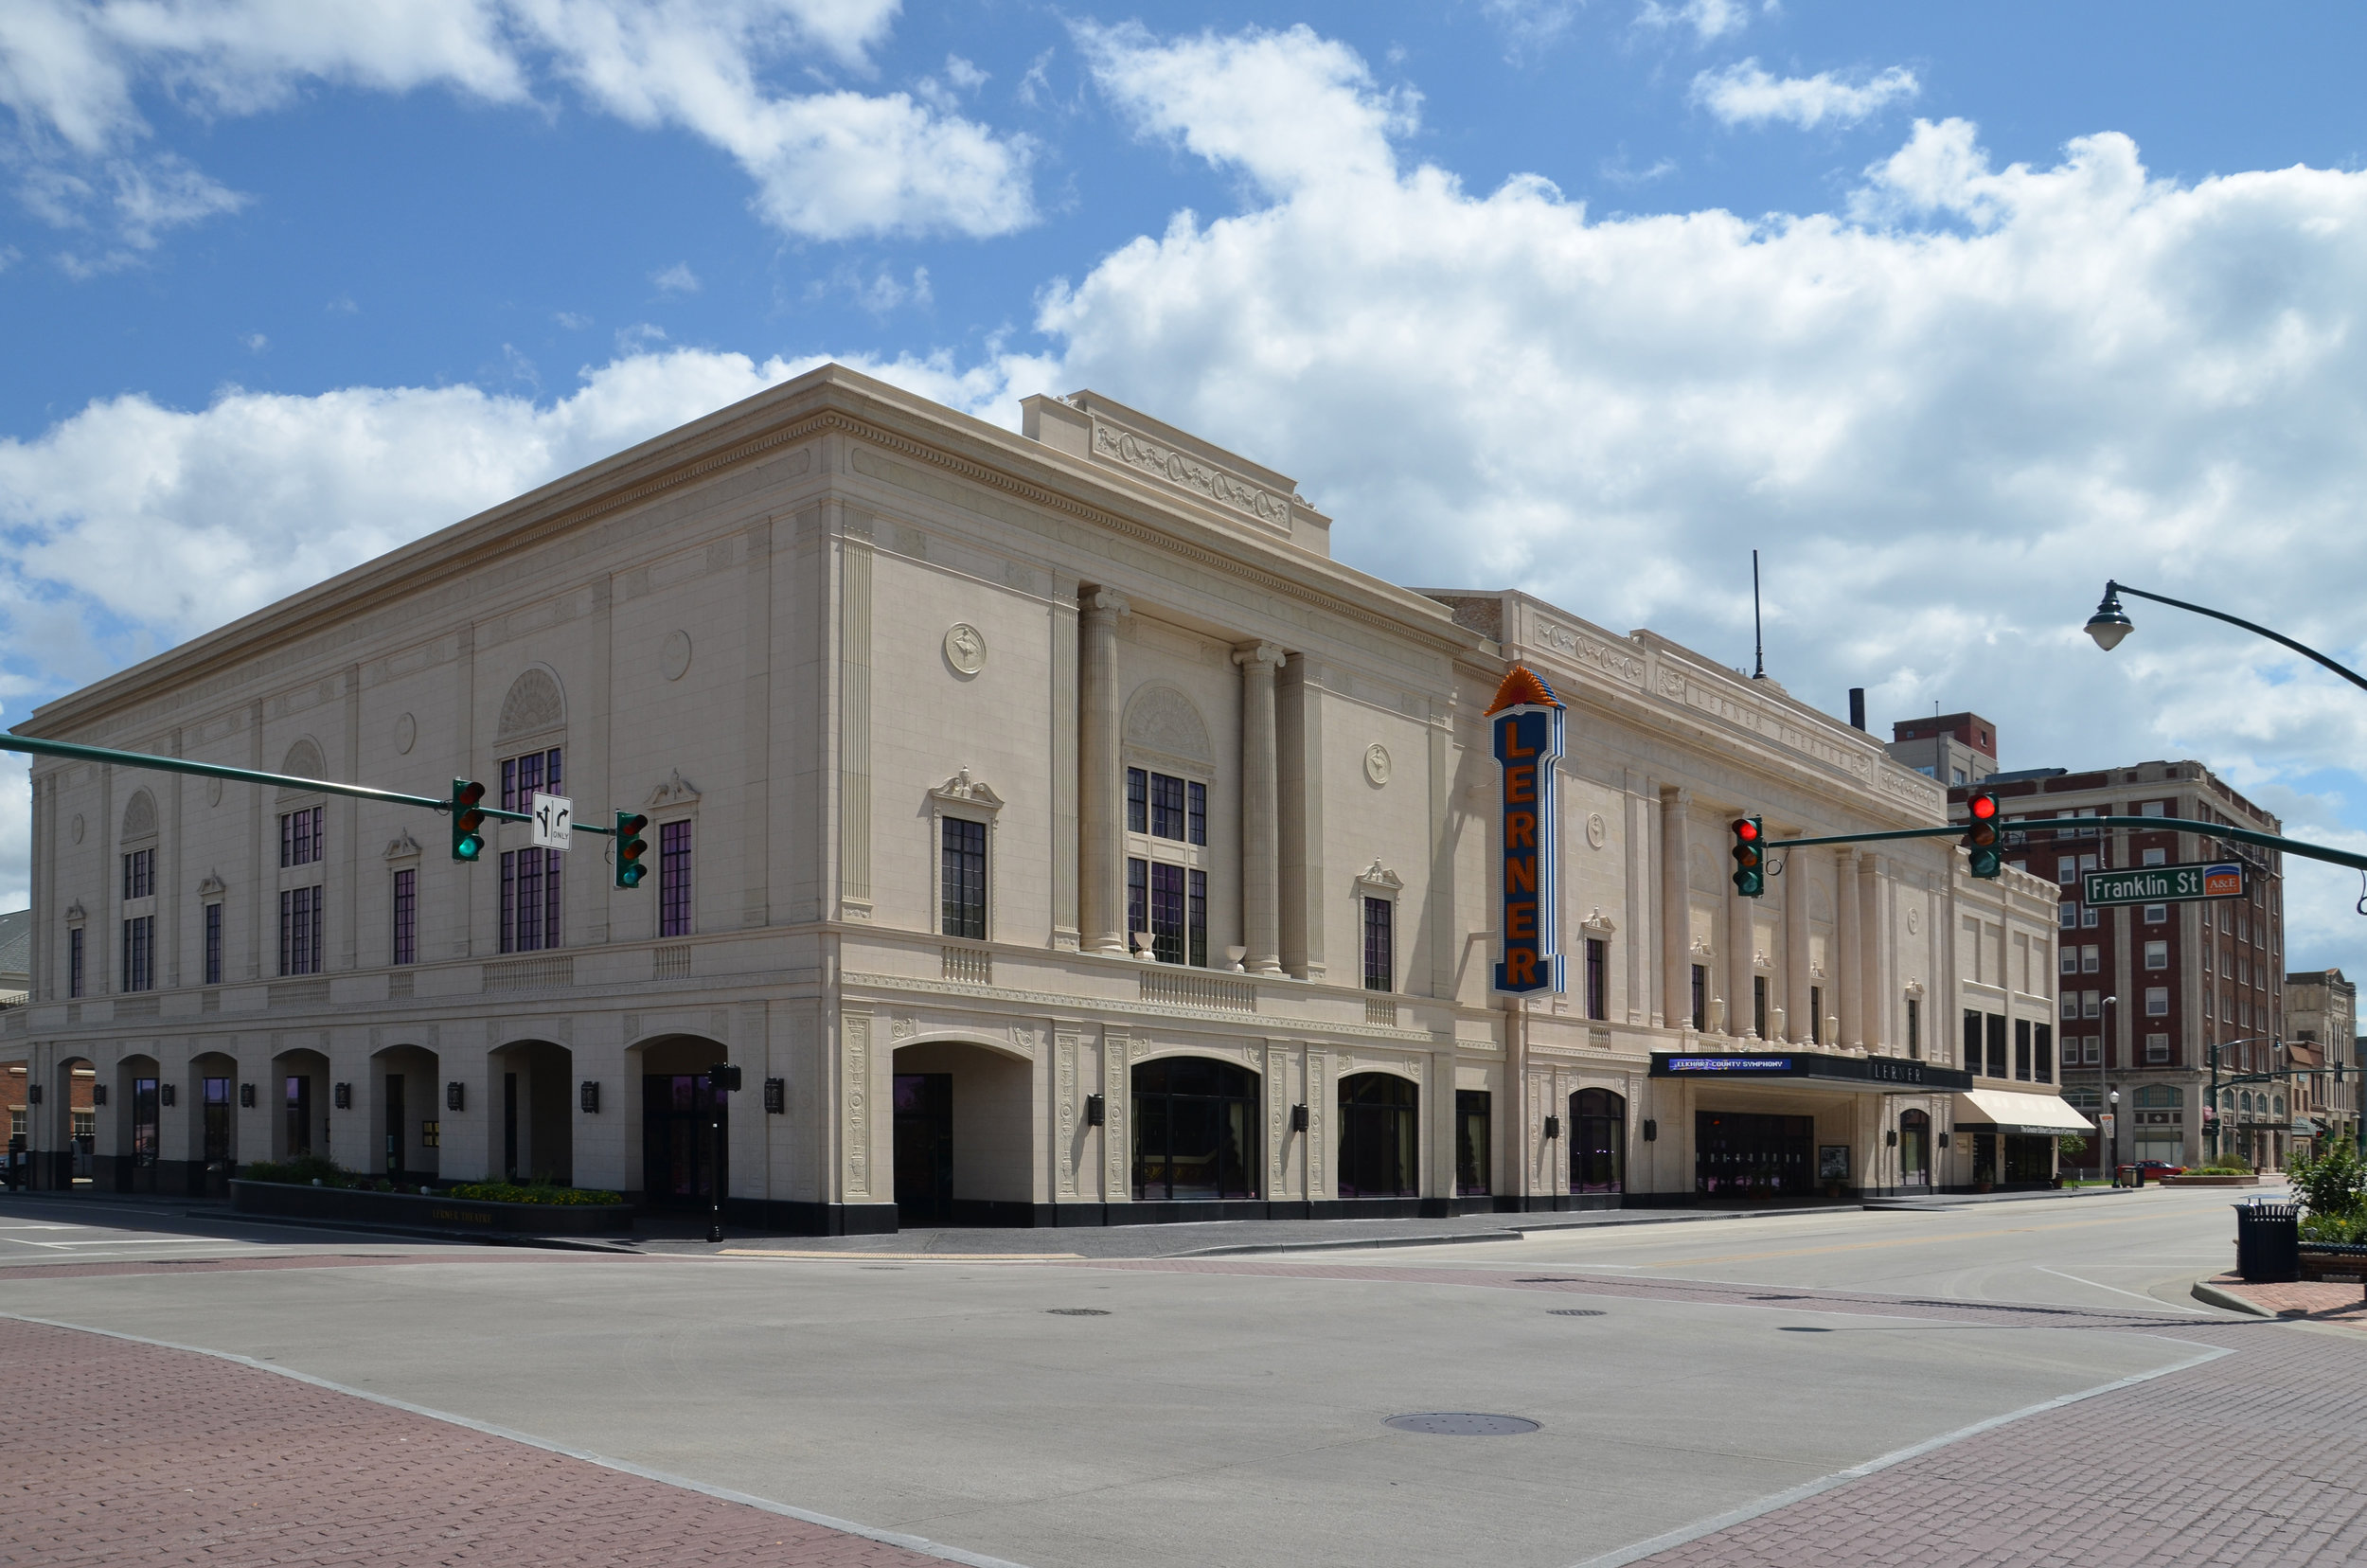 Completed Restoration of The Lerner Theater with addition of the Crystal Ballroom.